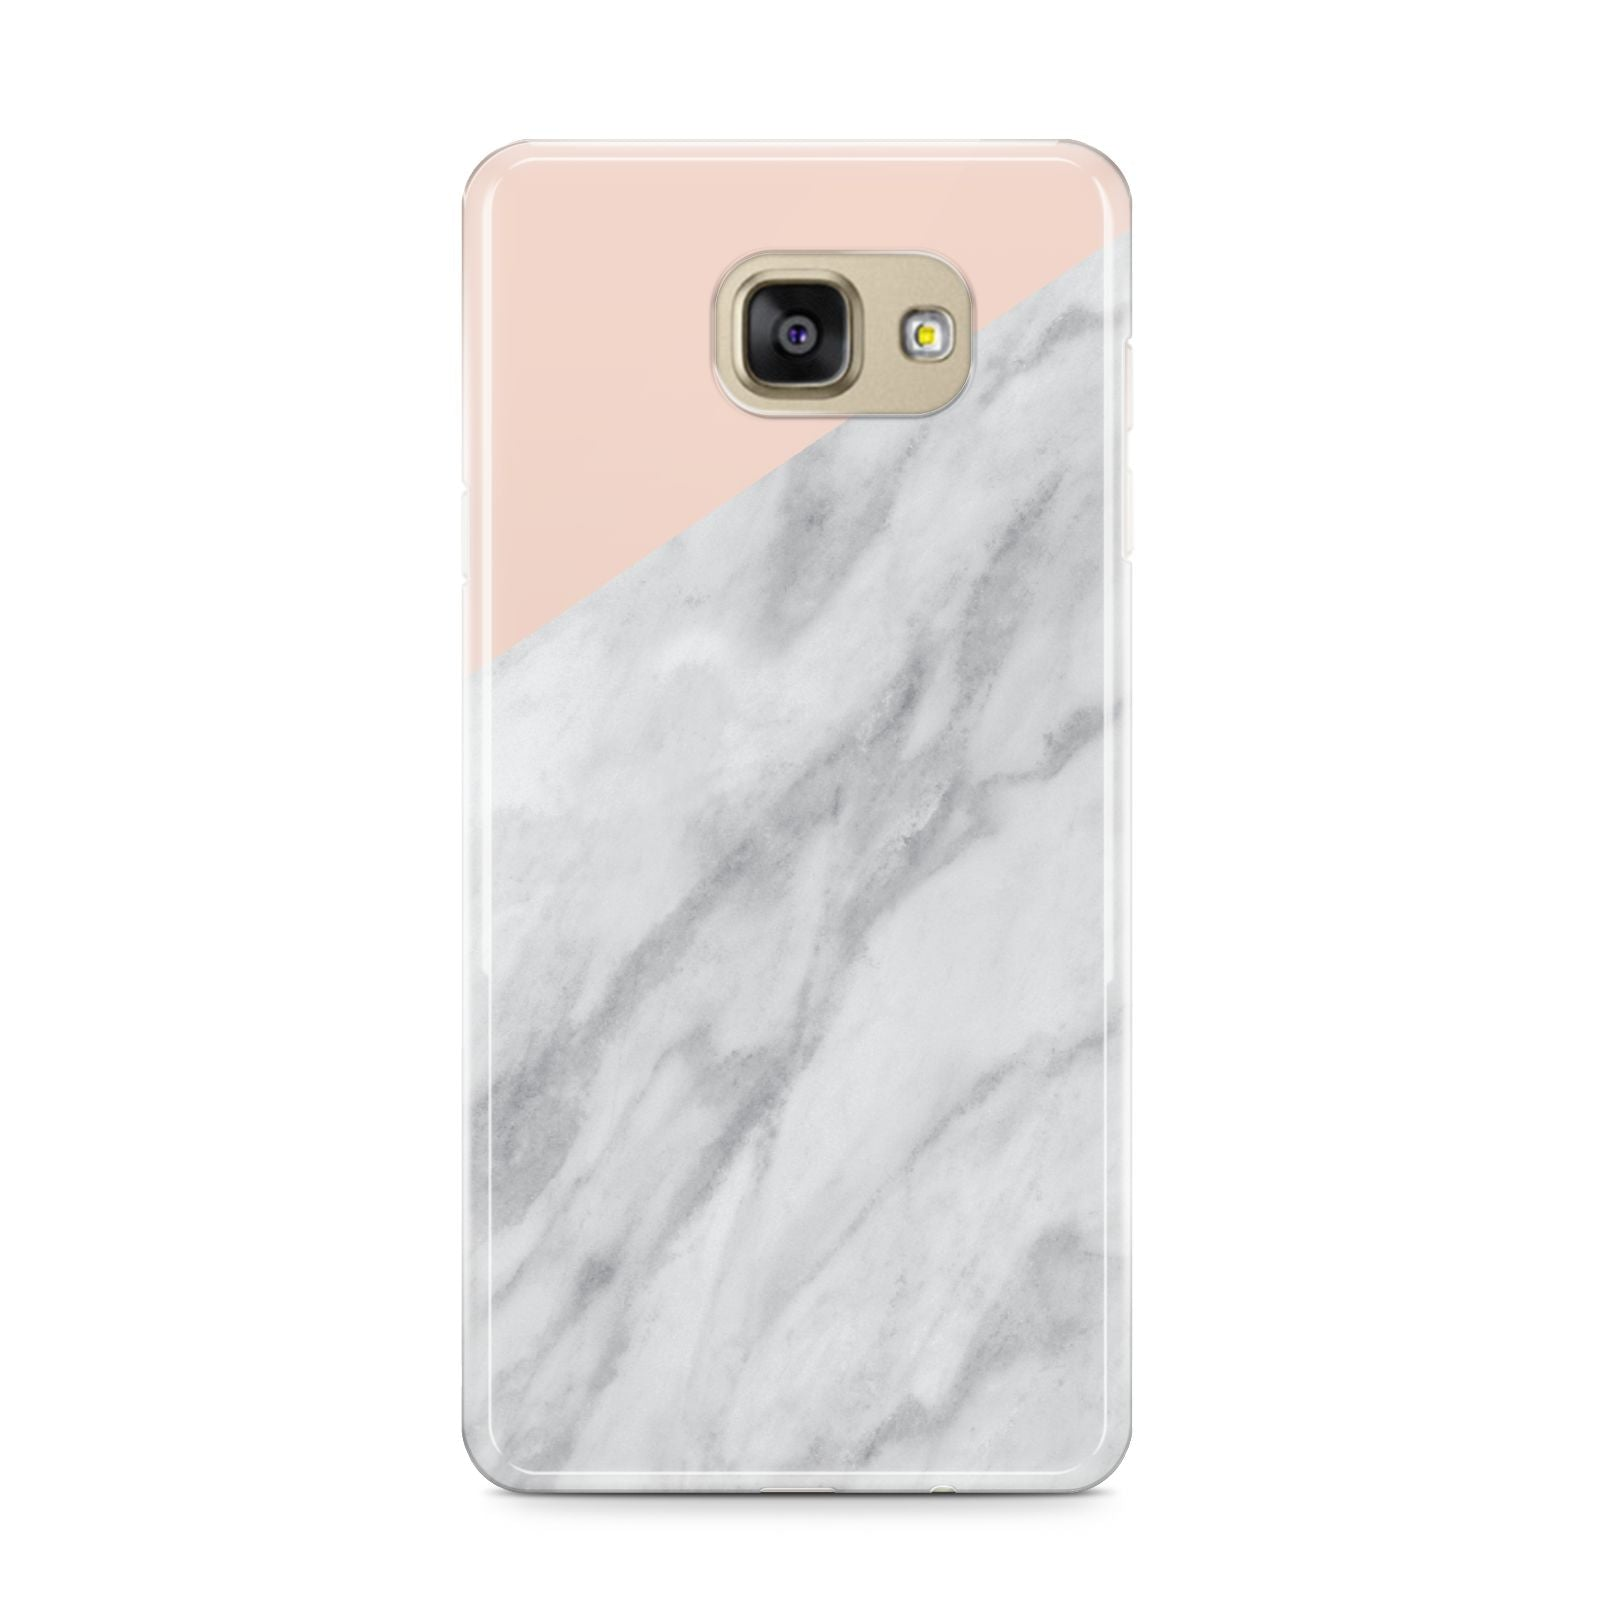 Marble Pink White Grey Samsung Galaxy A9 2016 Case on gold phone